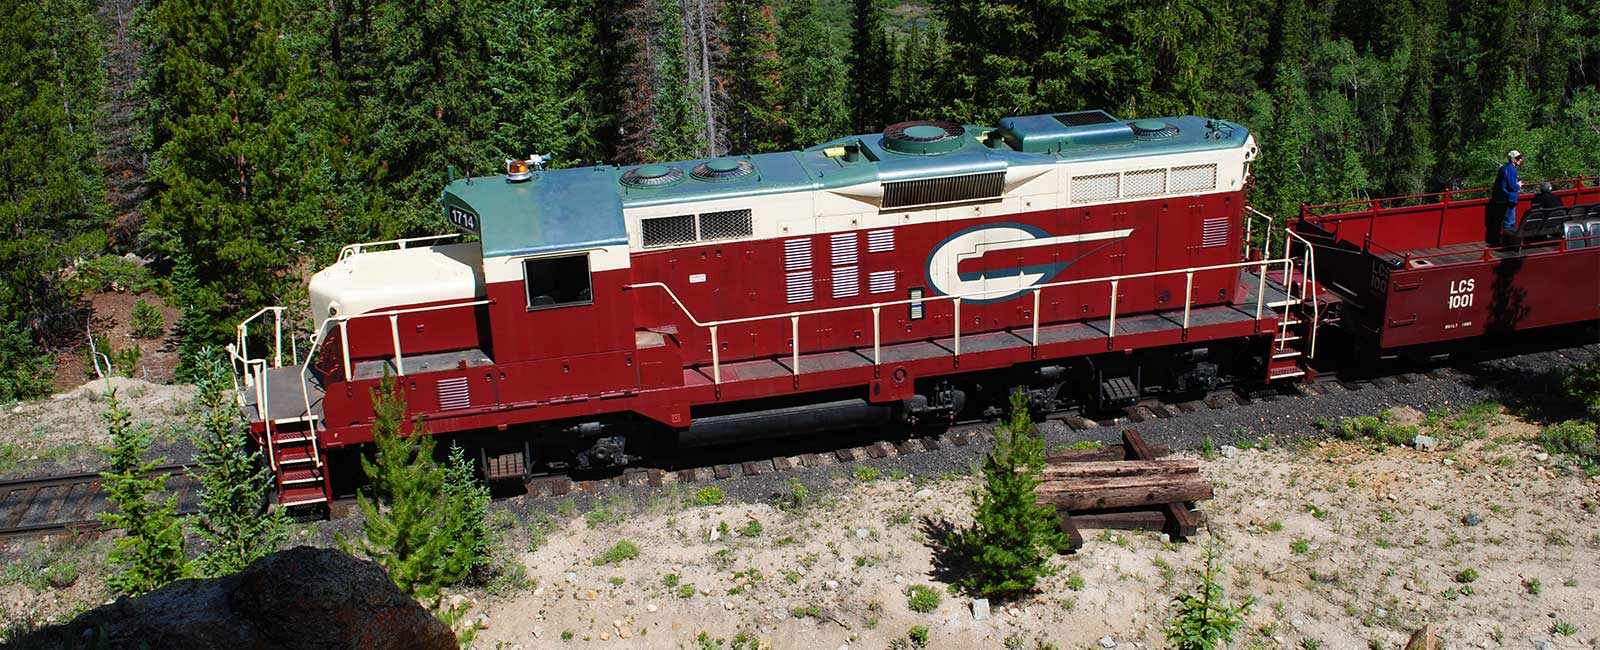 leadville colorado southern railroad scenic train rides